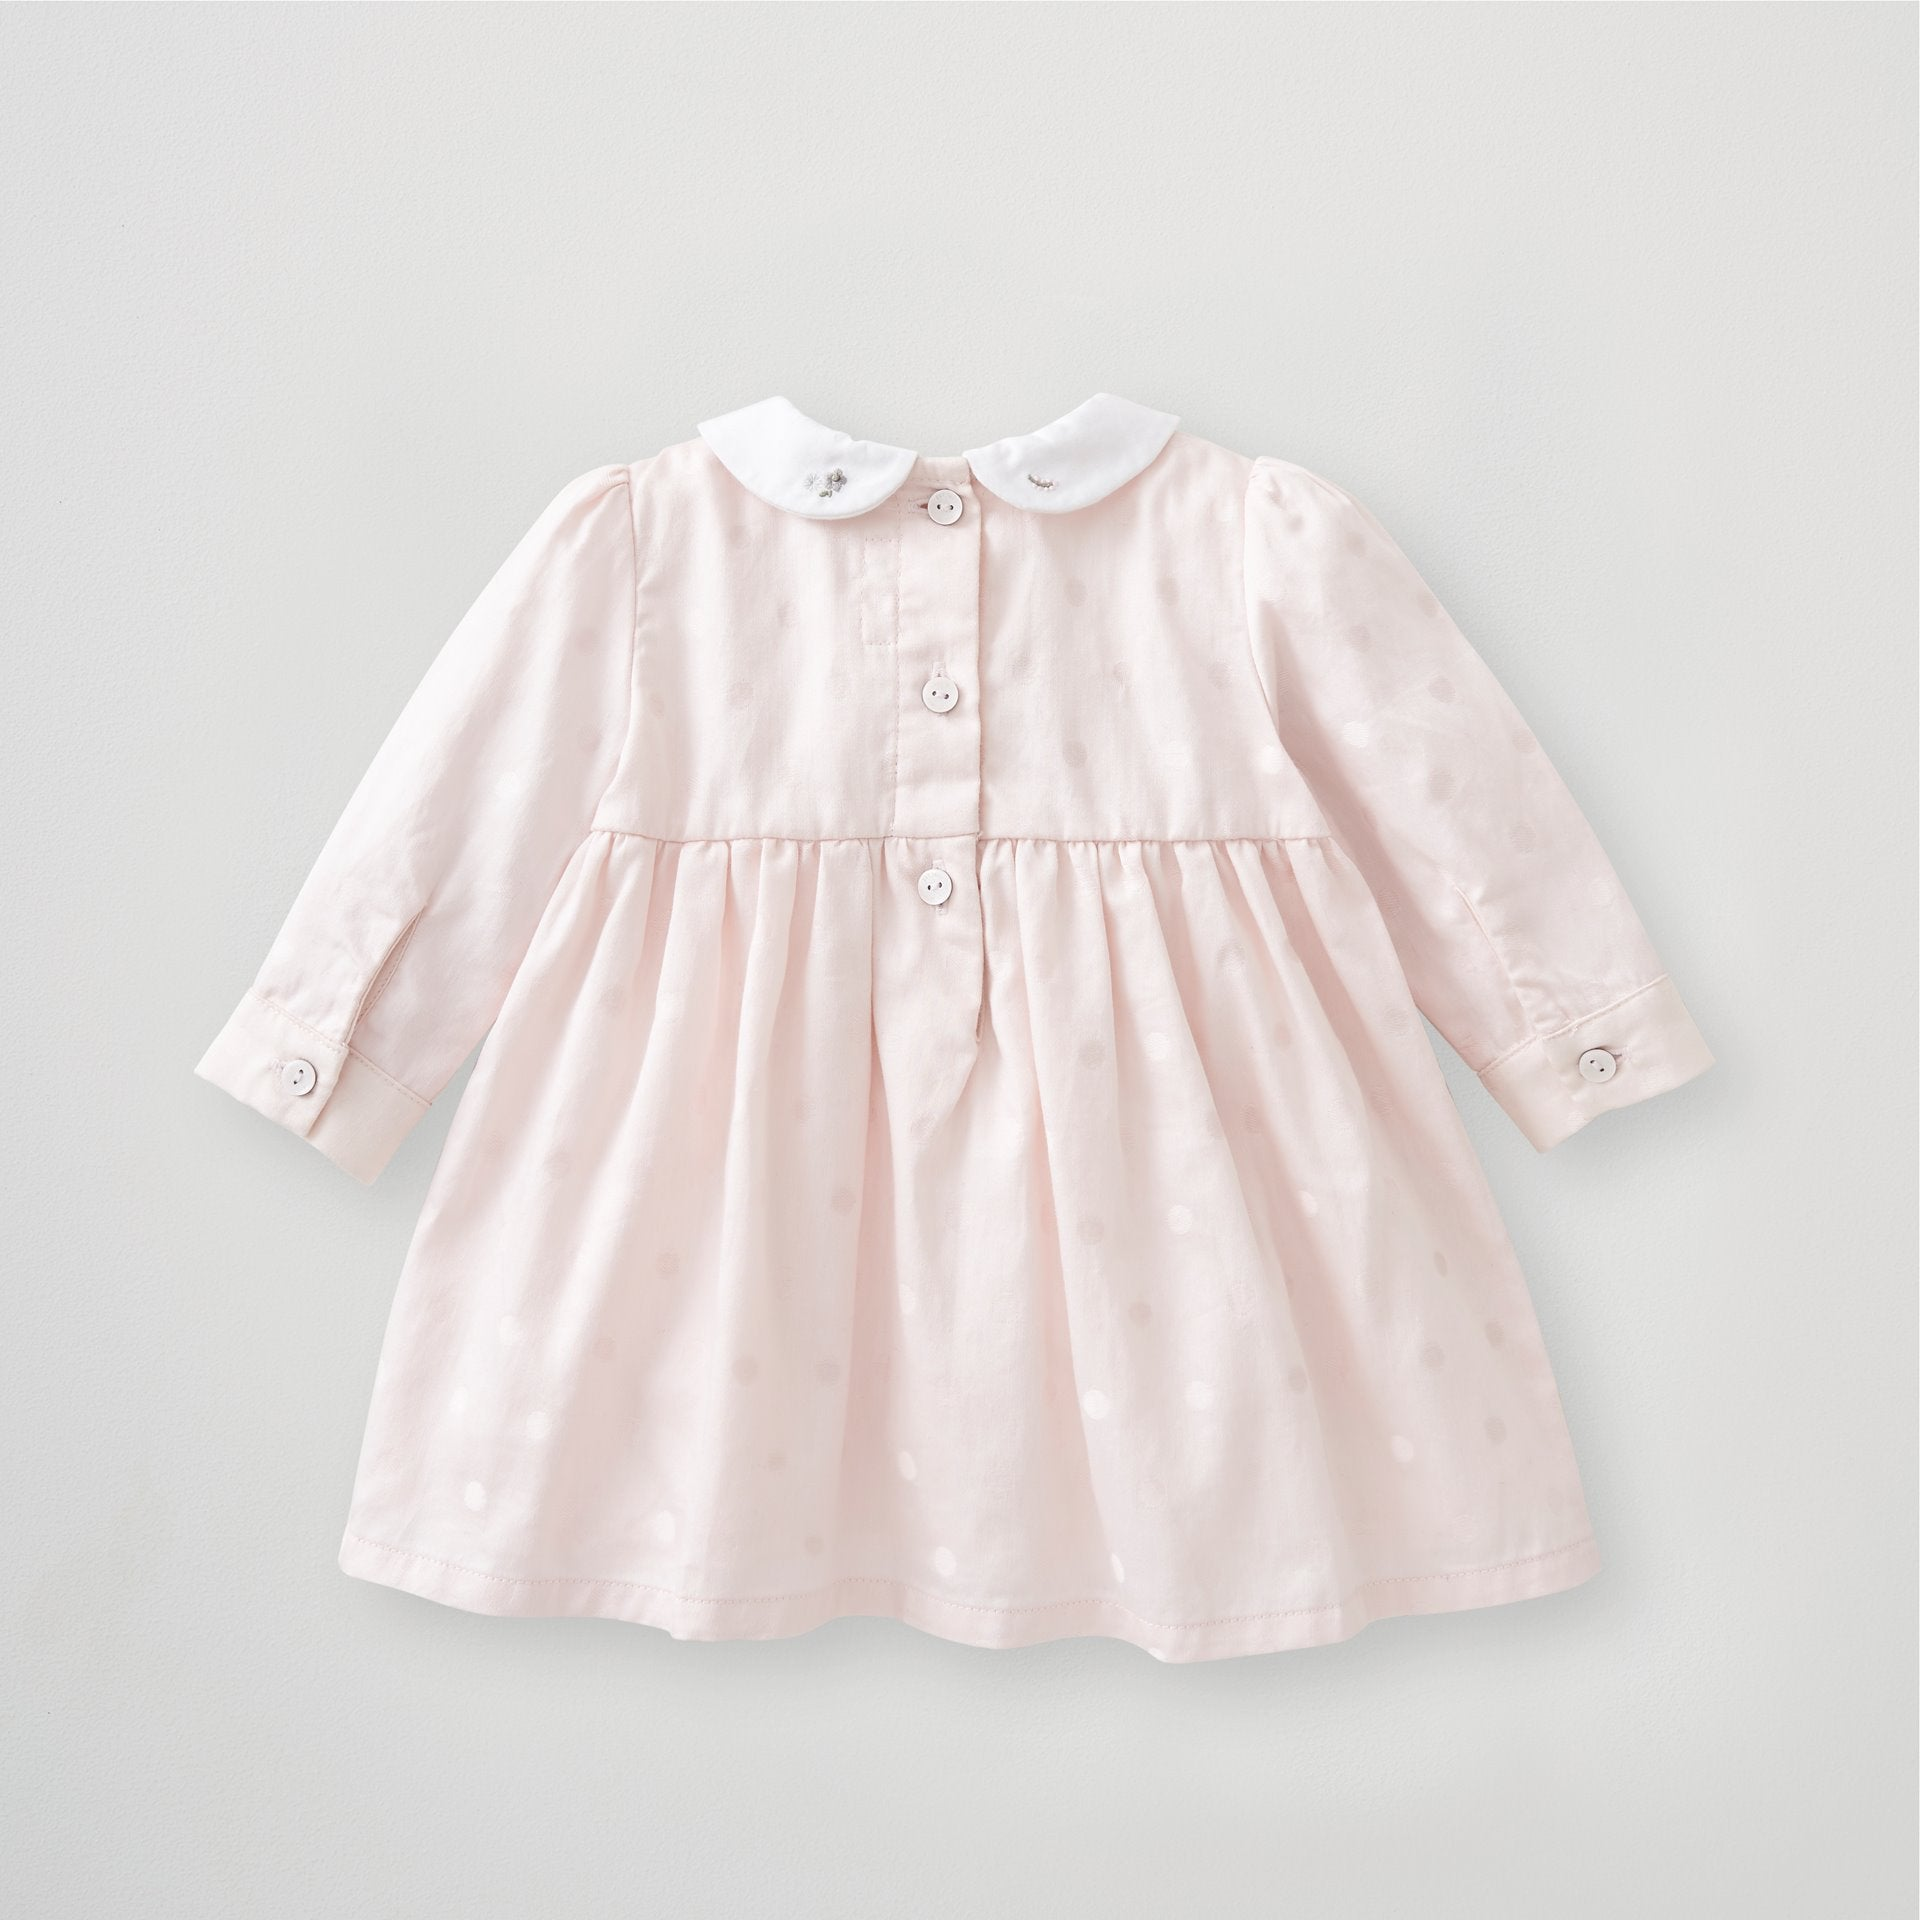 Girls Long Sleeve Smock Dress 3-6 Months